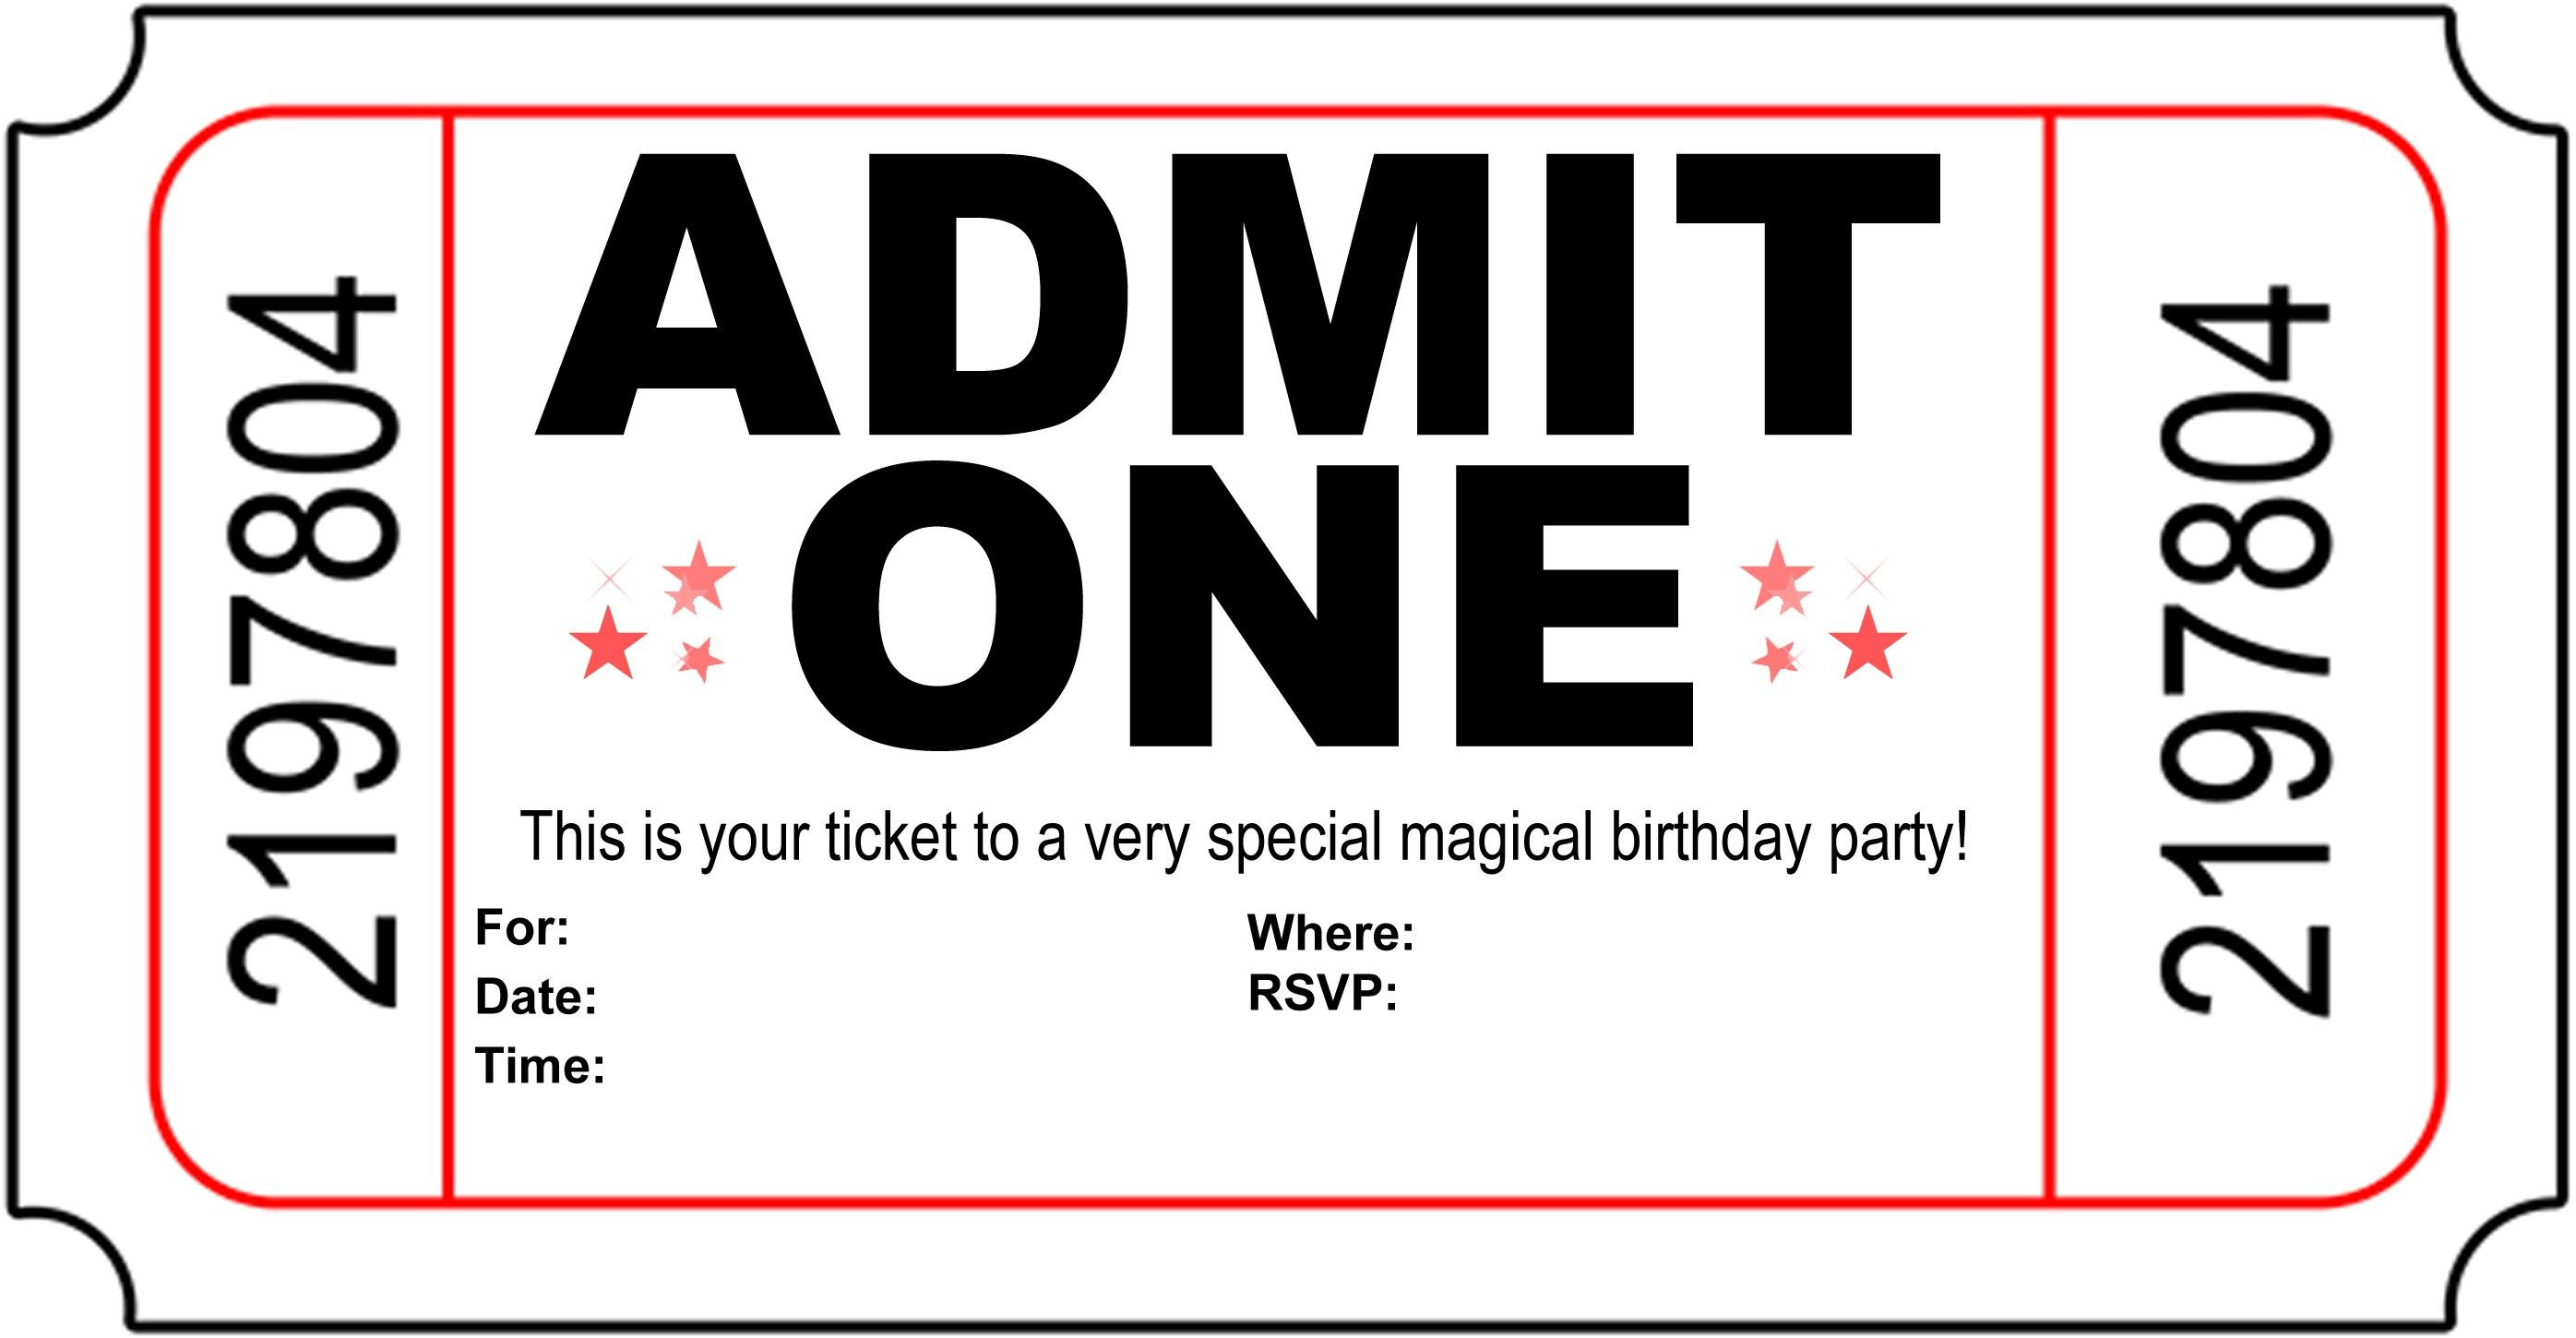 Birthday Party Invitation Free Printable | Printshop. | Pinterest - Movie Birthday Party Invitations Free Printable